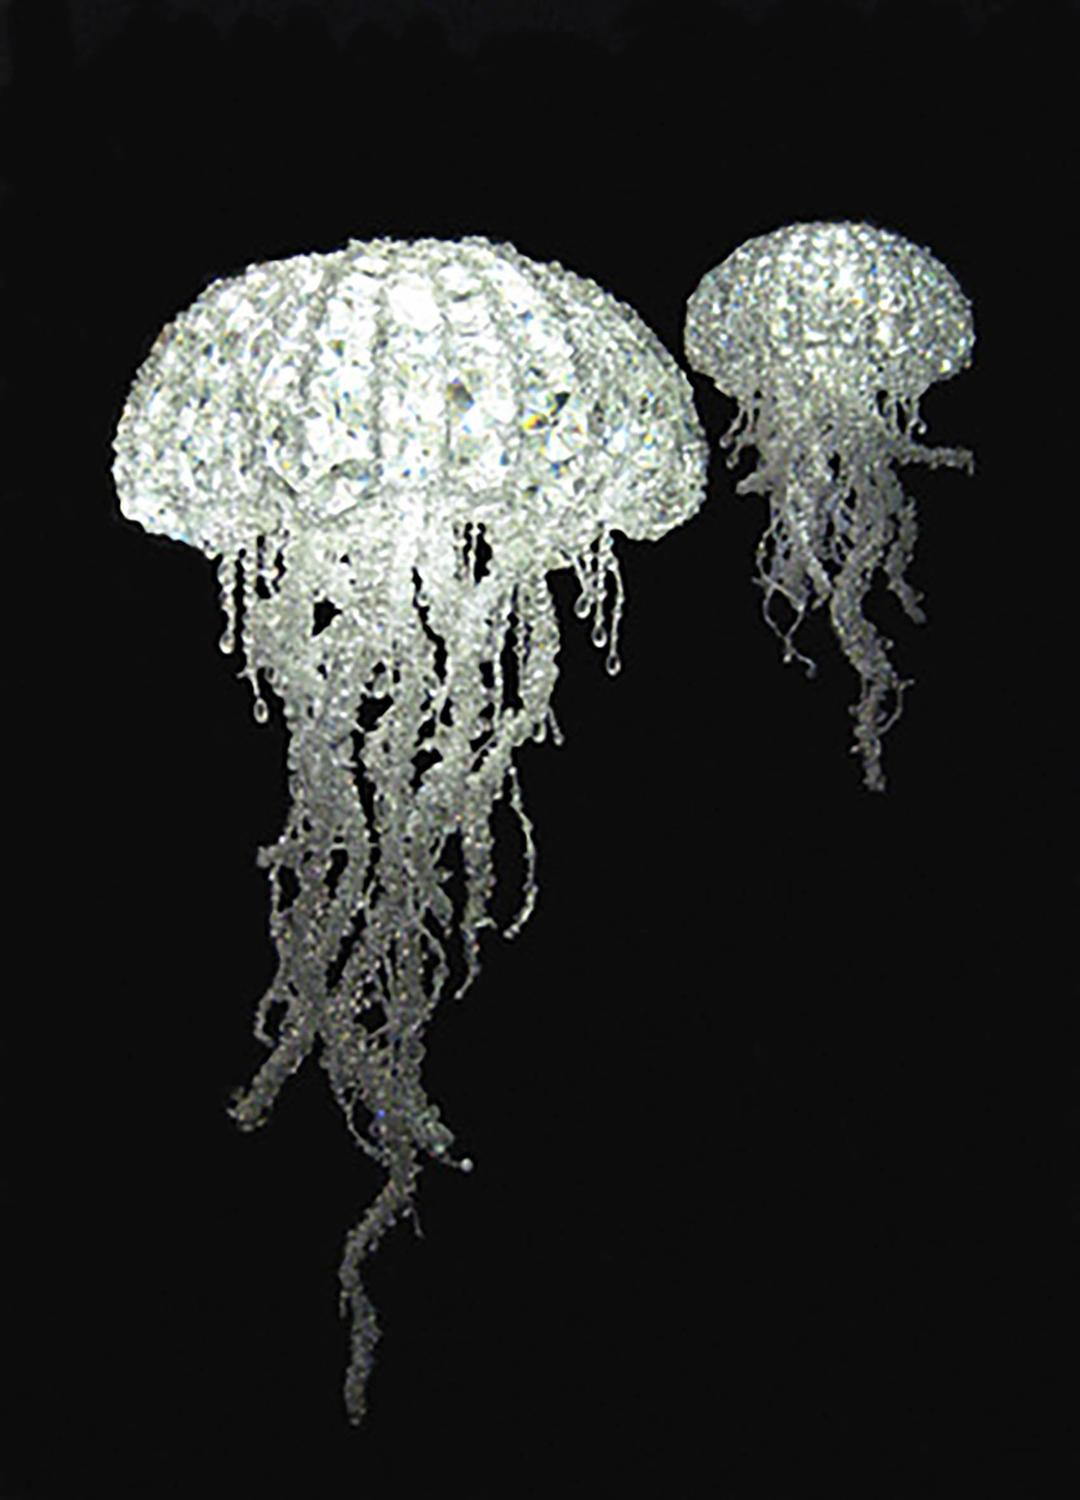 2010 Handmade Crystal Jellyfish Led Light Chandelier By